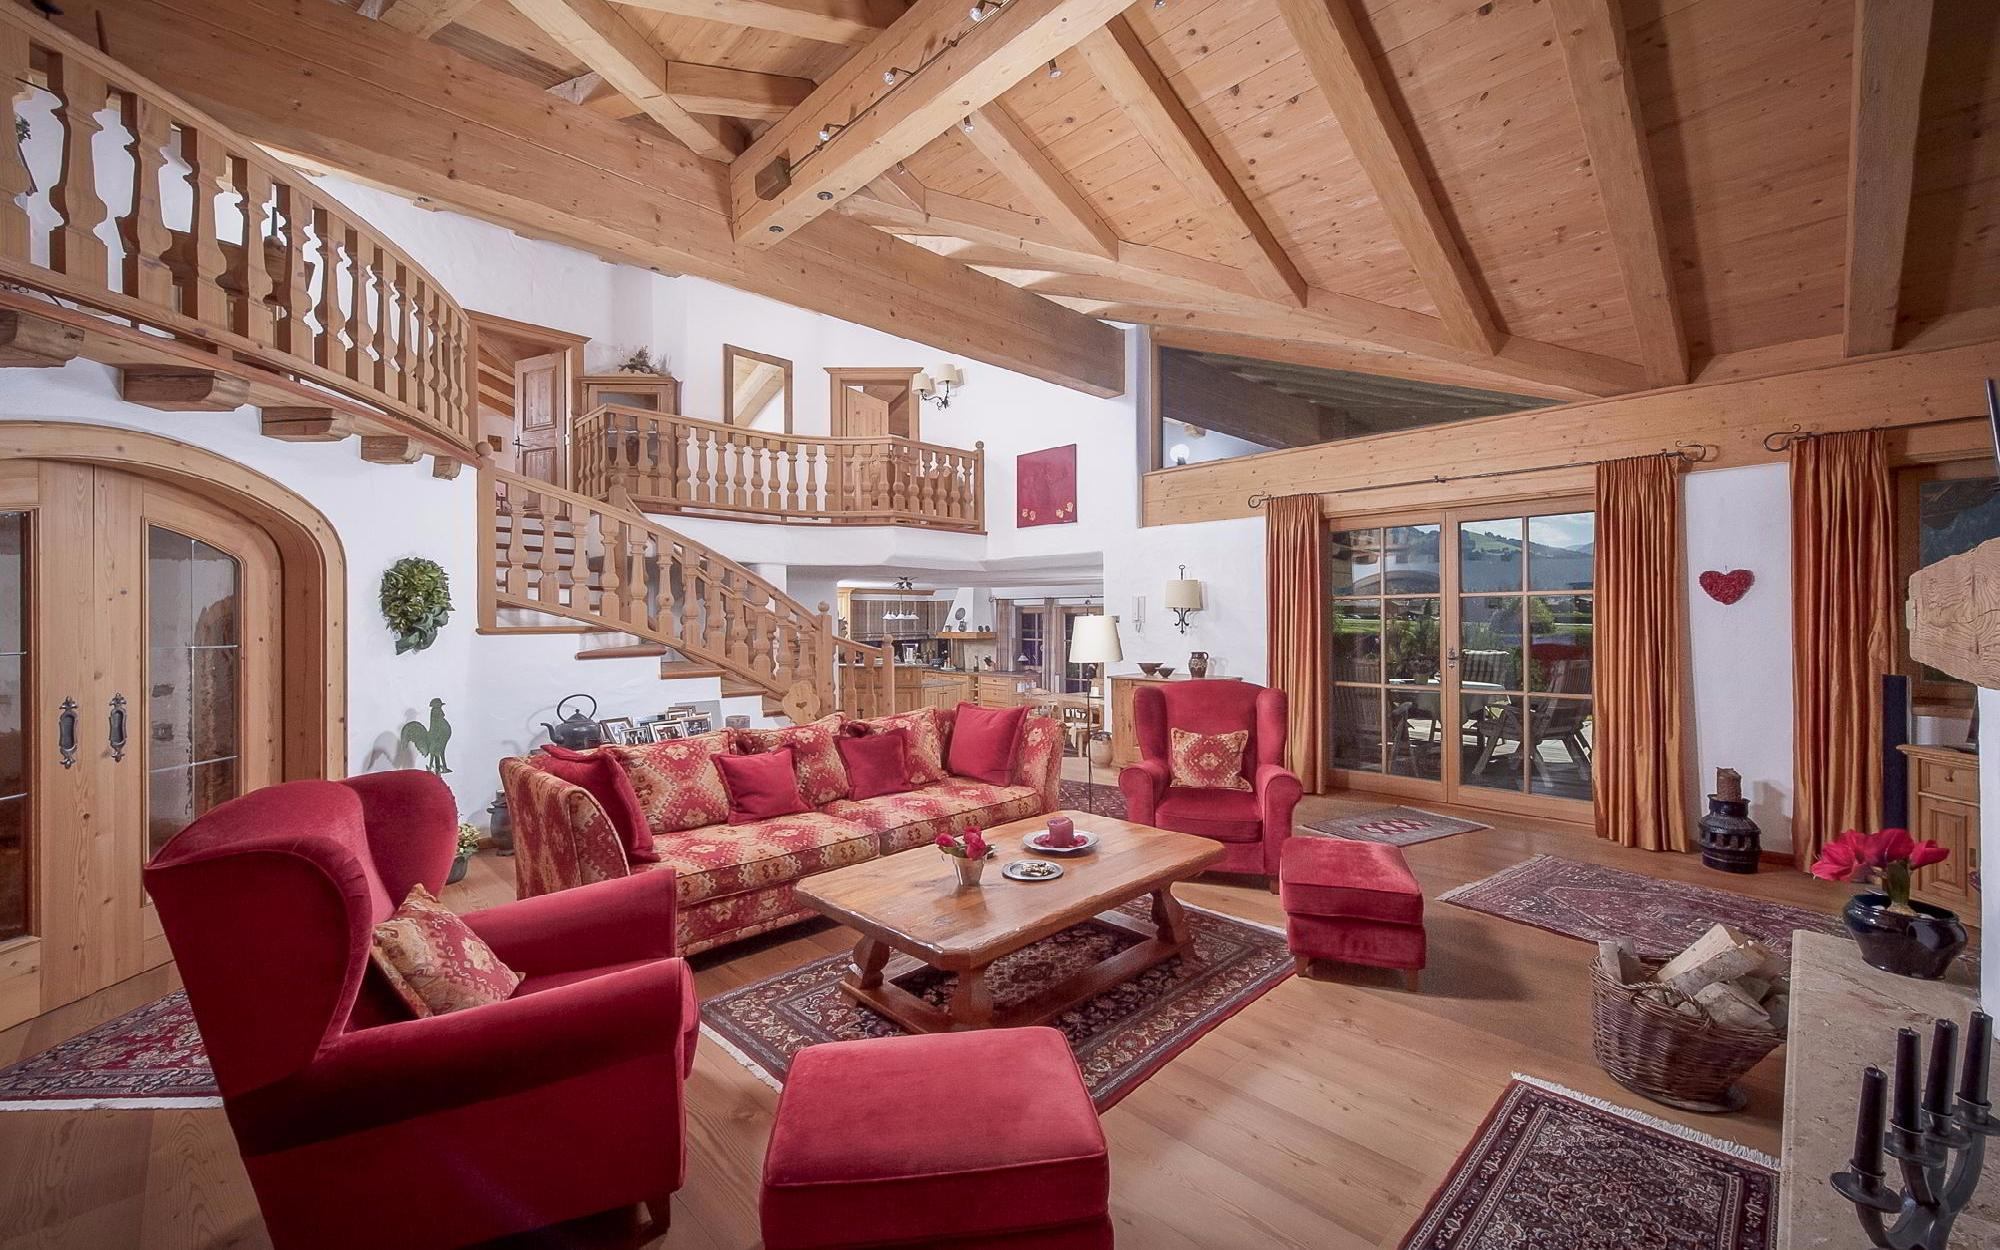 Onroerend goed in Oostenrijk - Quality country house in Tyrolean style close to Kitzbuehel